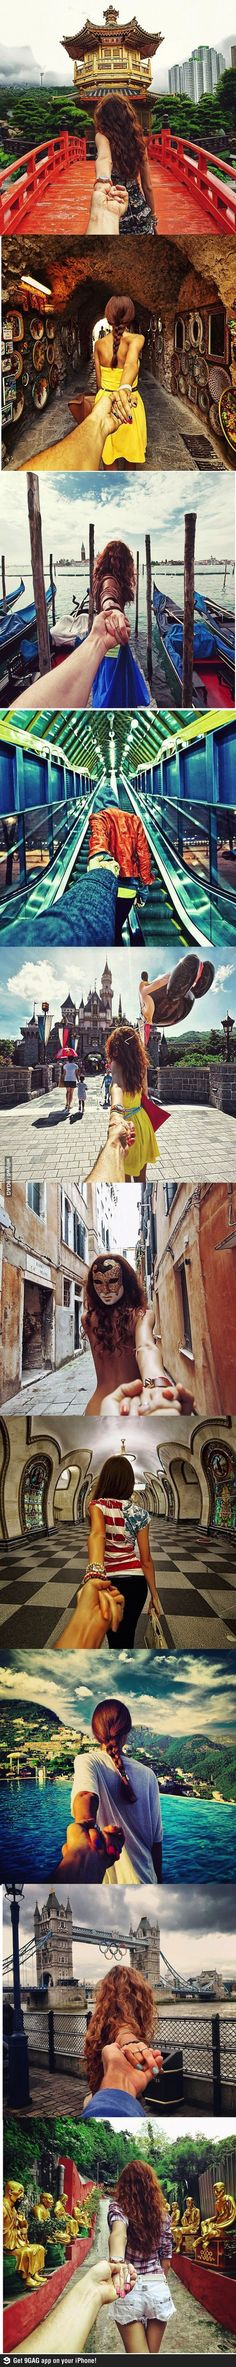 Photographer's Girlfriend Leads Him Around the World. Very cute idea.